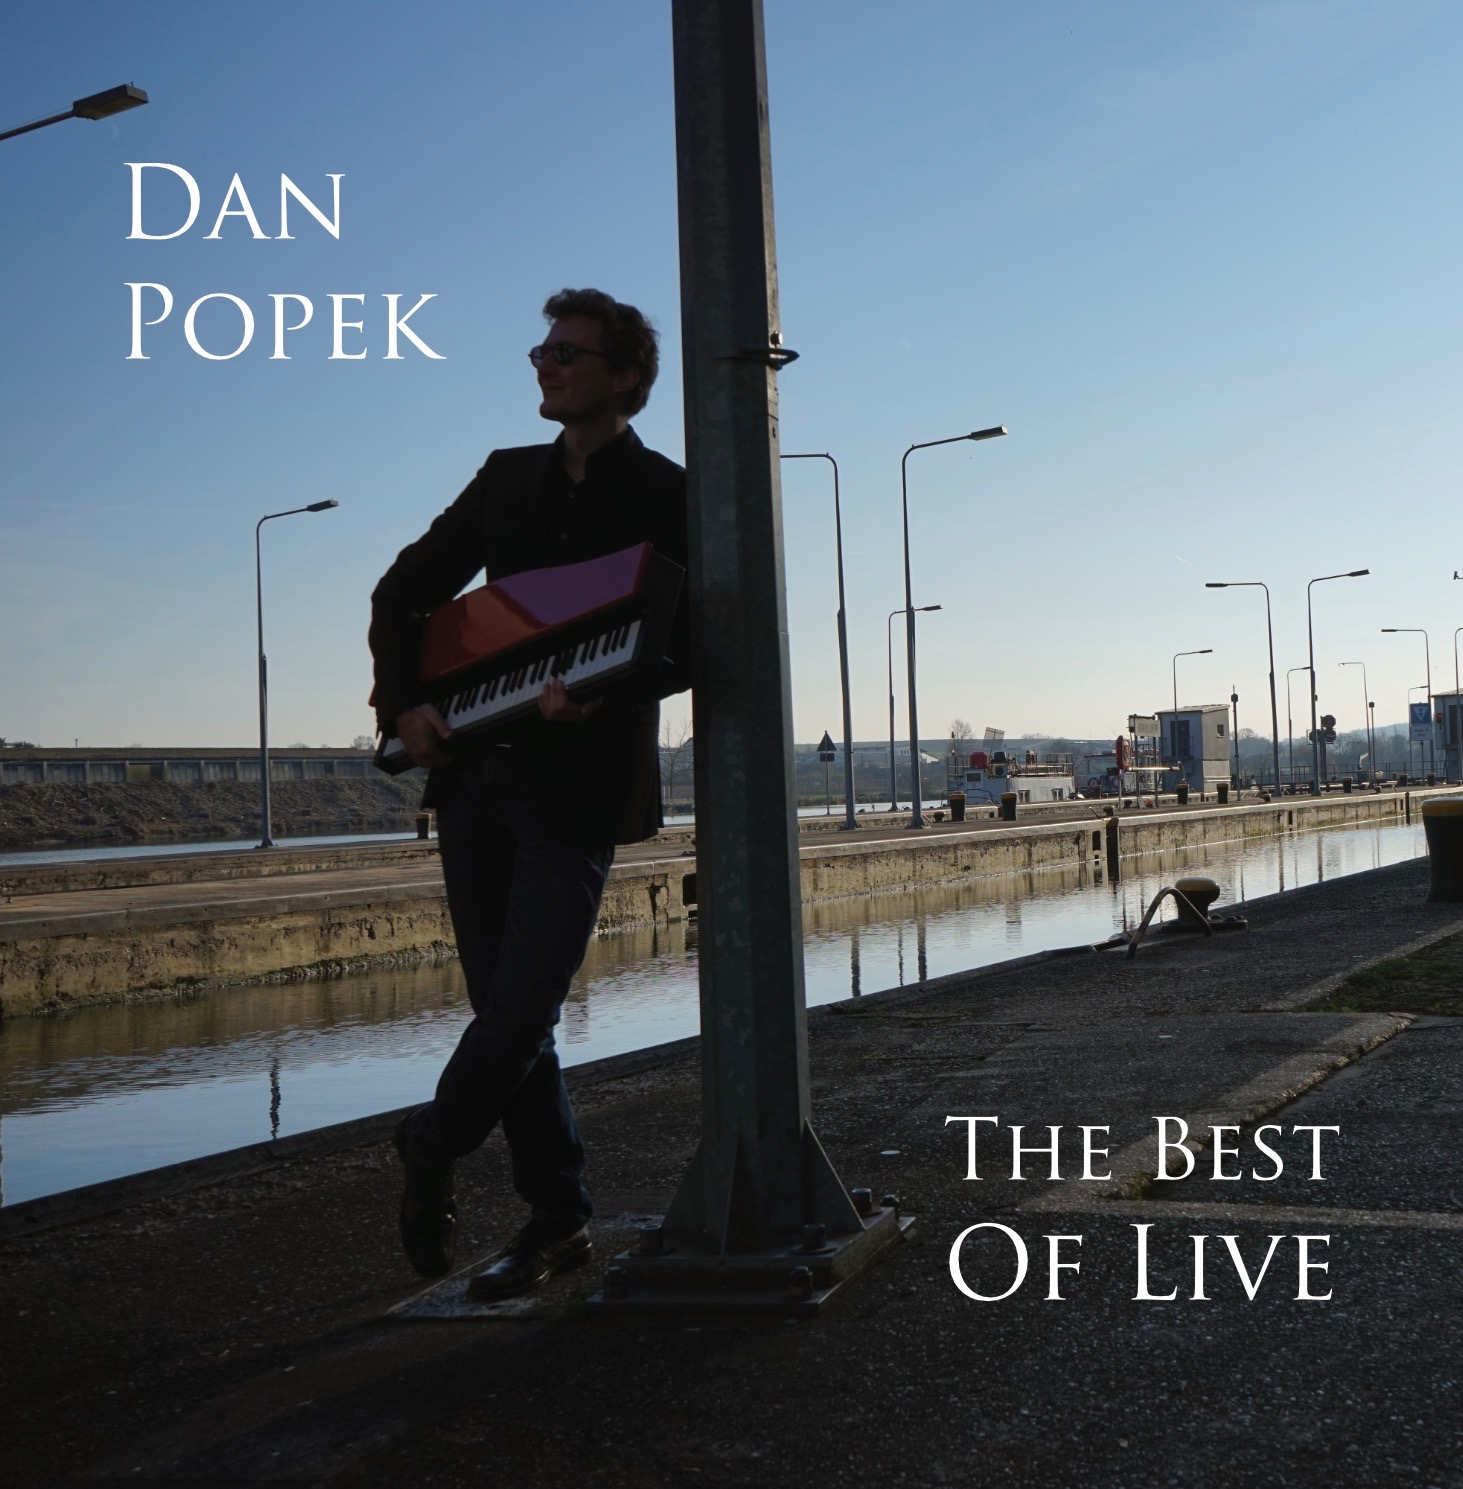 The Best Of Live